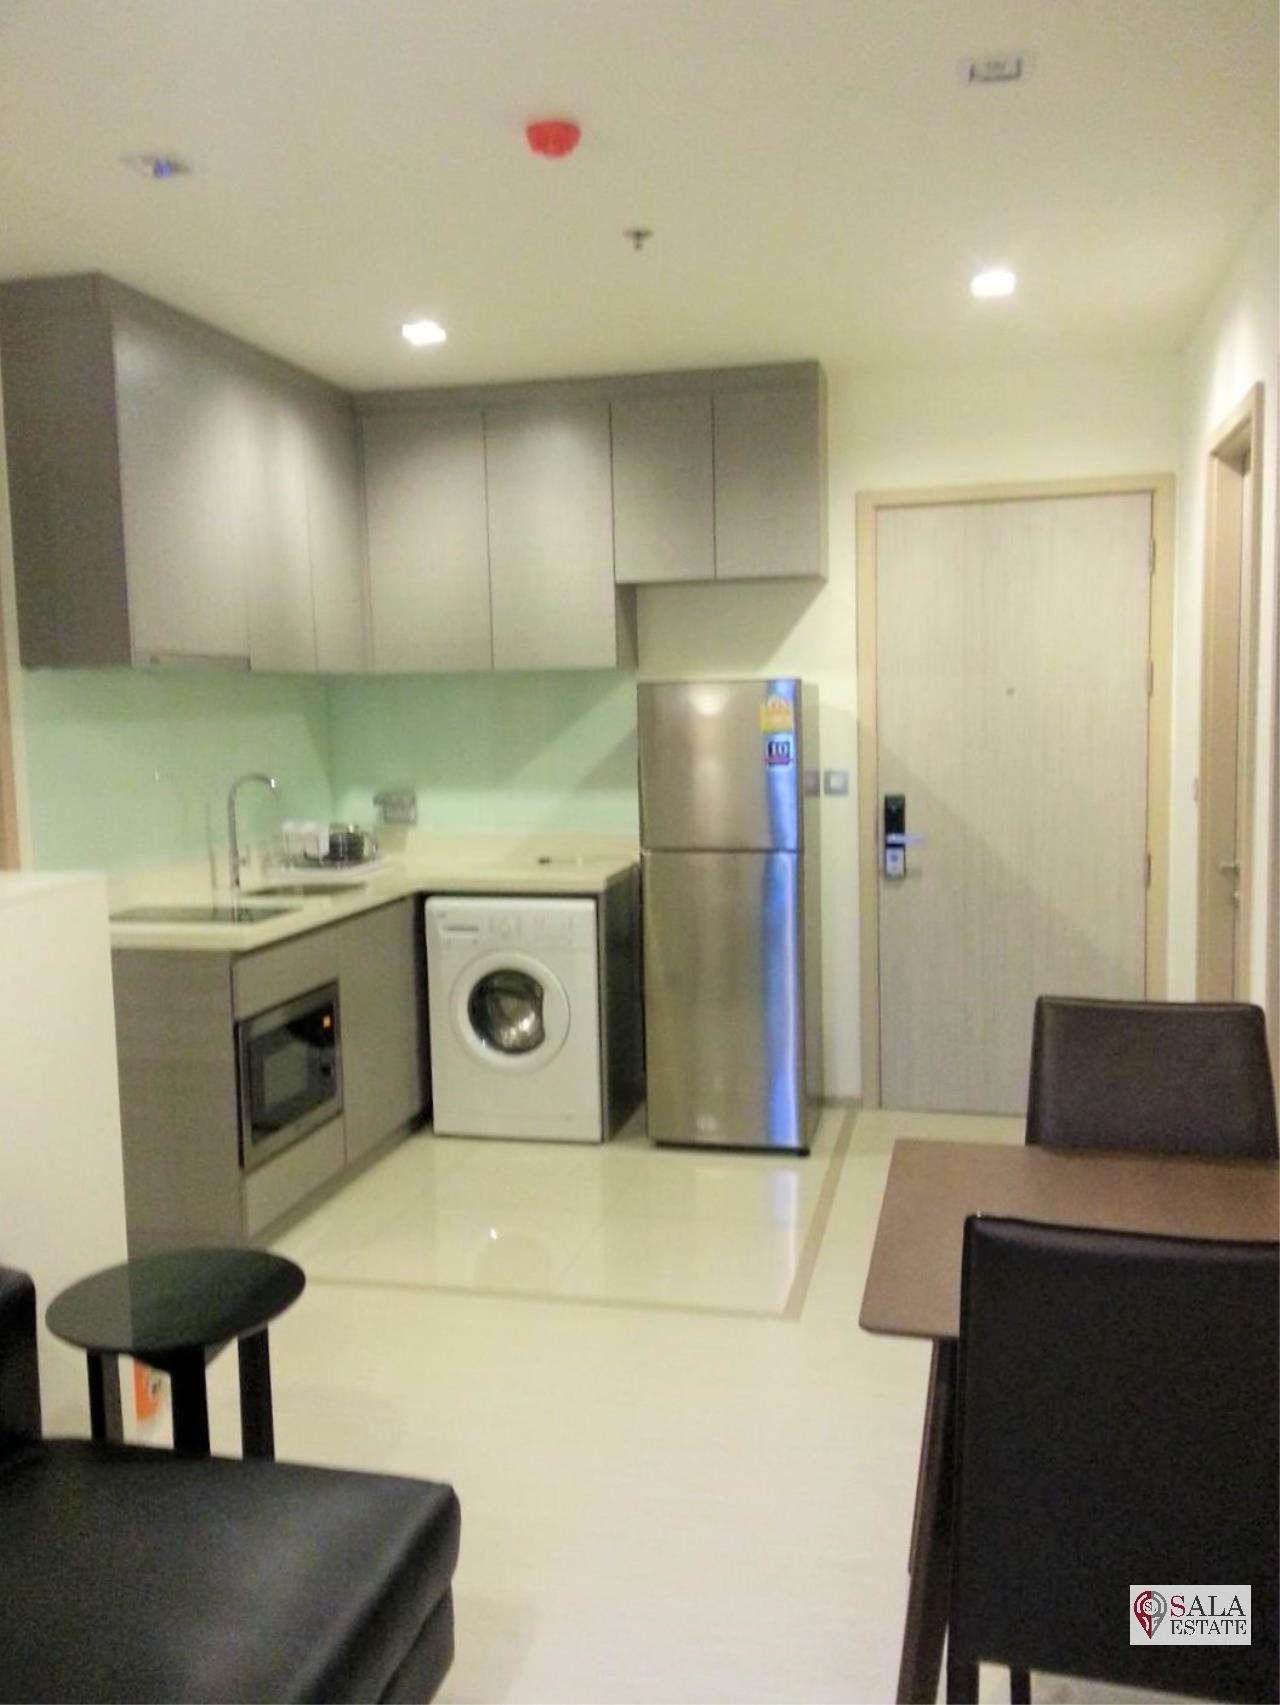 SALA ESTATE Agency's (SALE WITH TENANT)RHYTHM SUKHUMVIT 36-38 – BTS THONG LOR, 55.6 SQM 2BEDROOMS 2BATHROOMS, FULLY FURNISHED 4